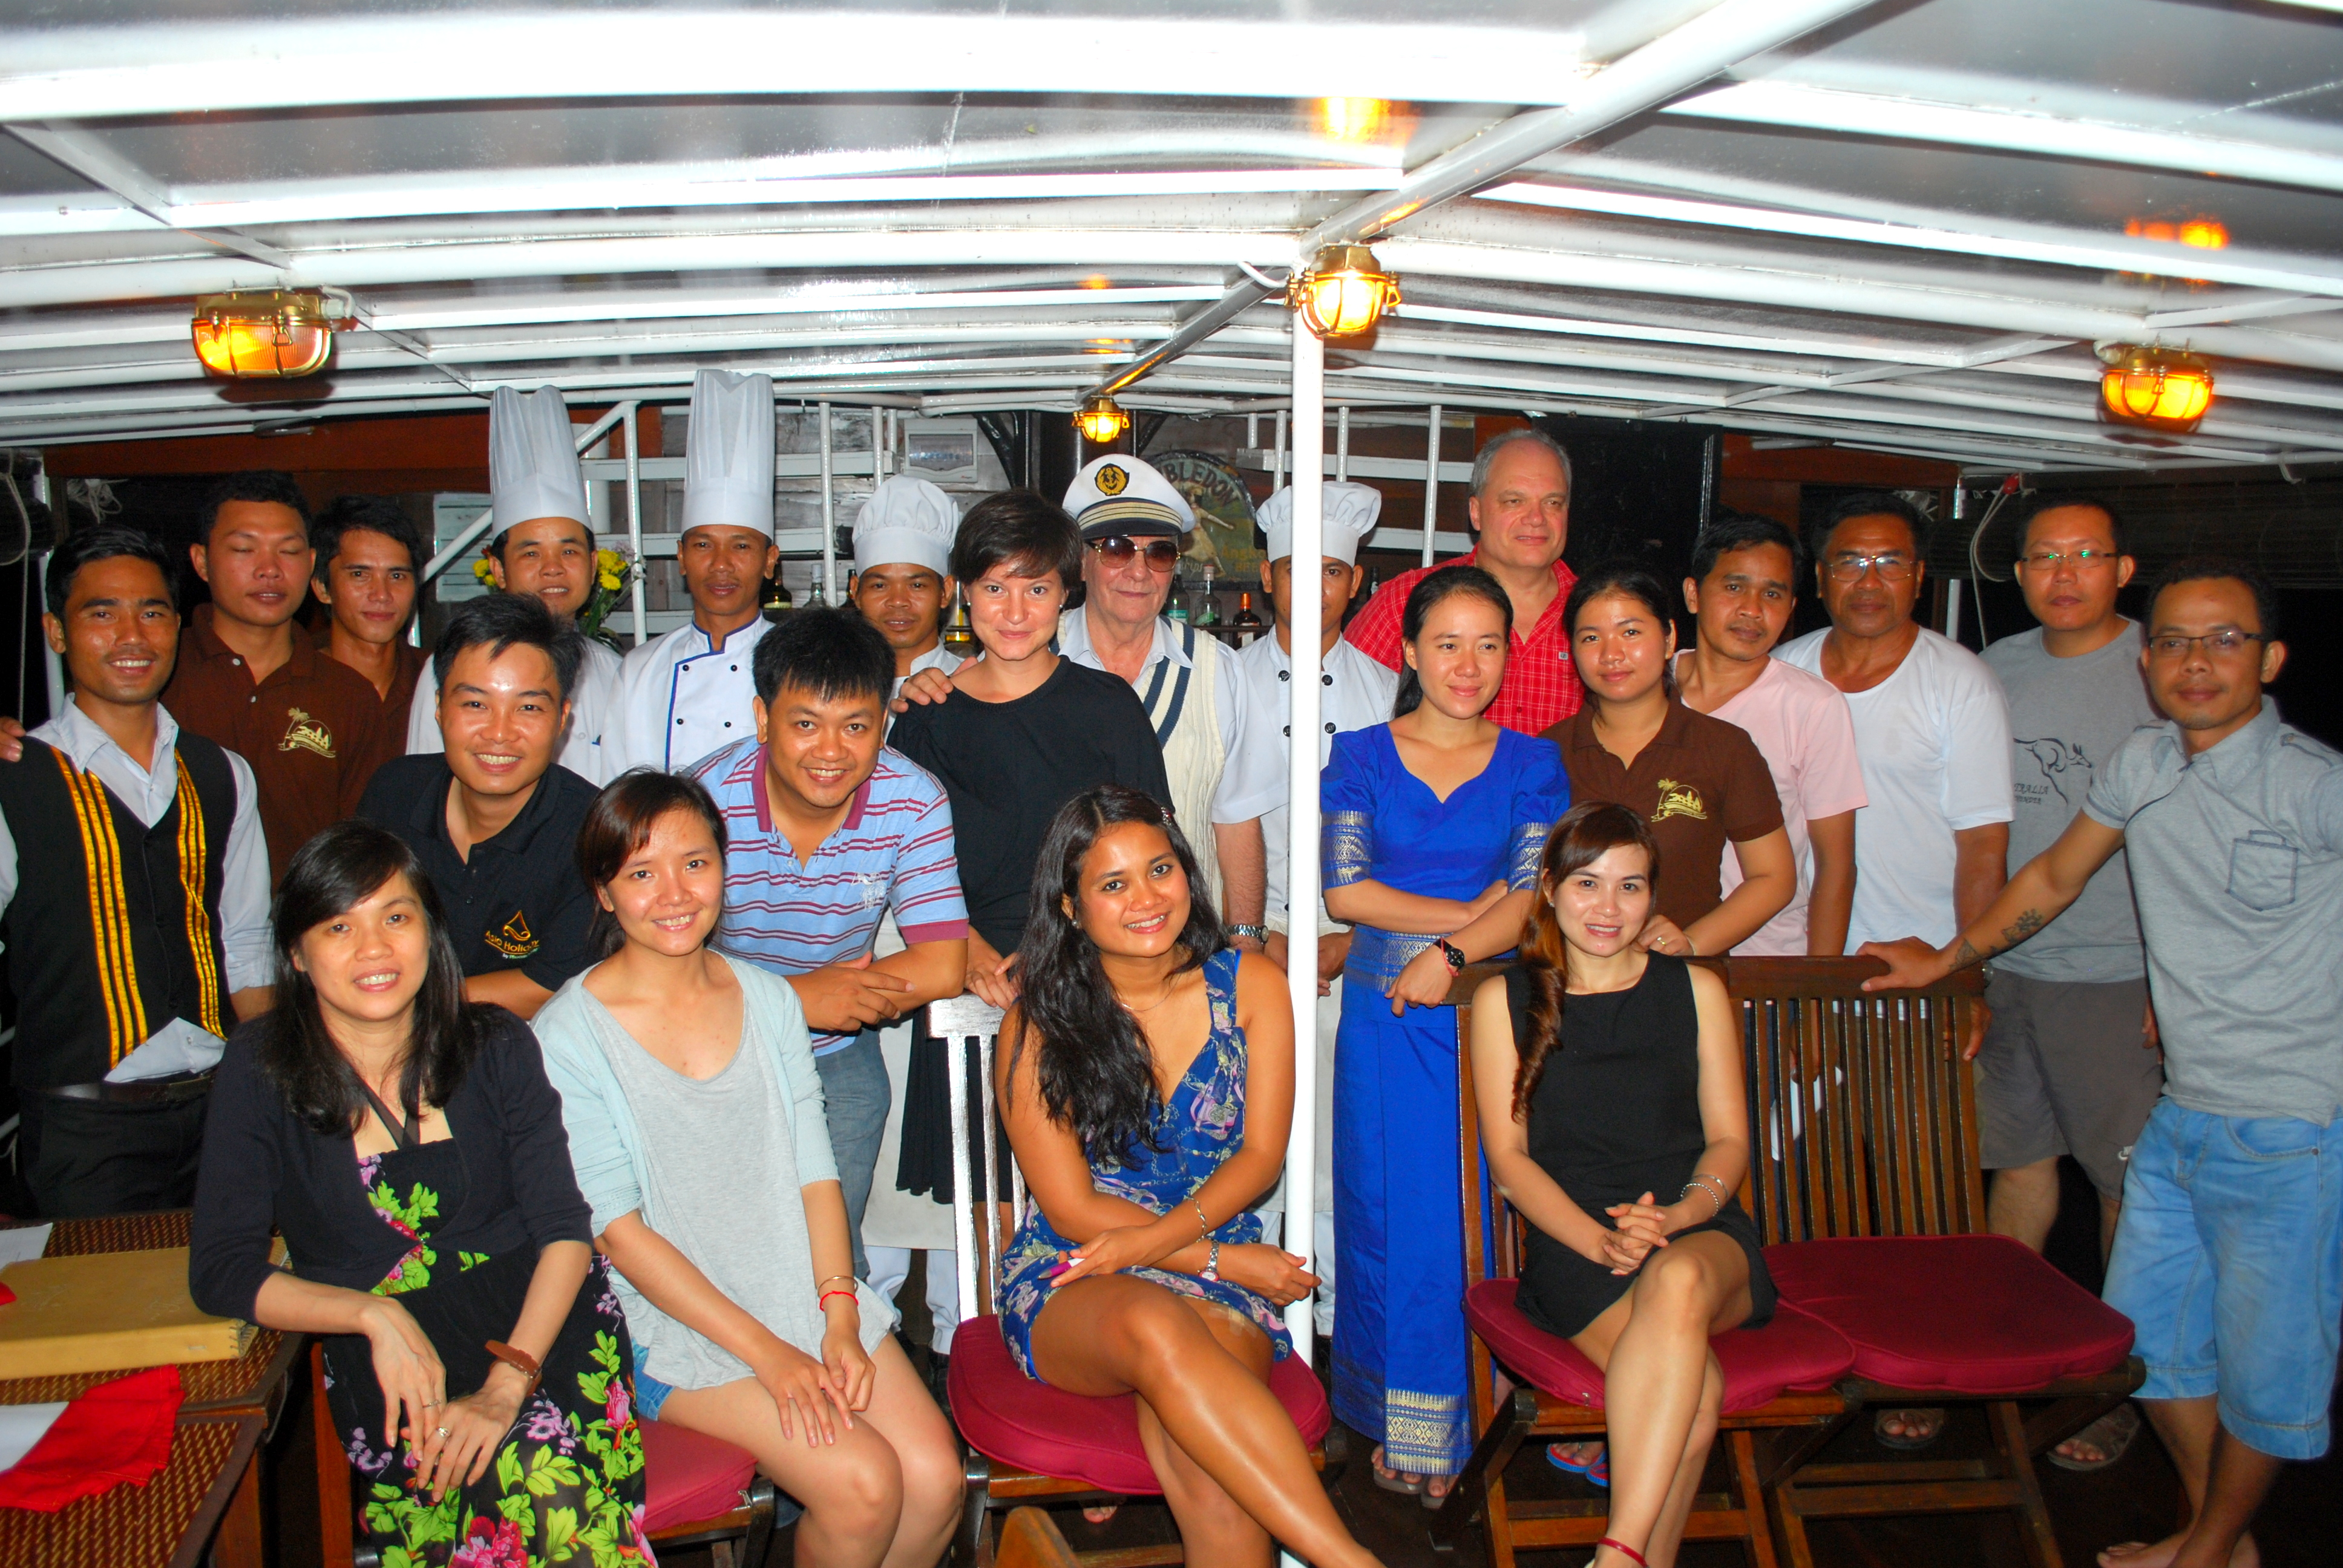 Agents and Operators awed by Toum Tiou